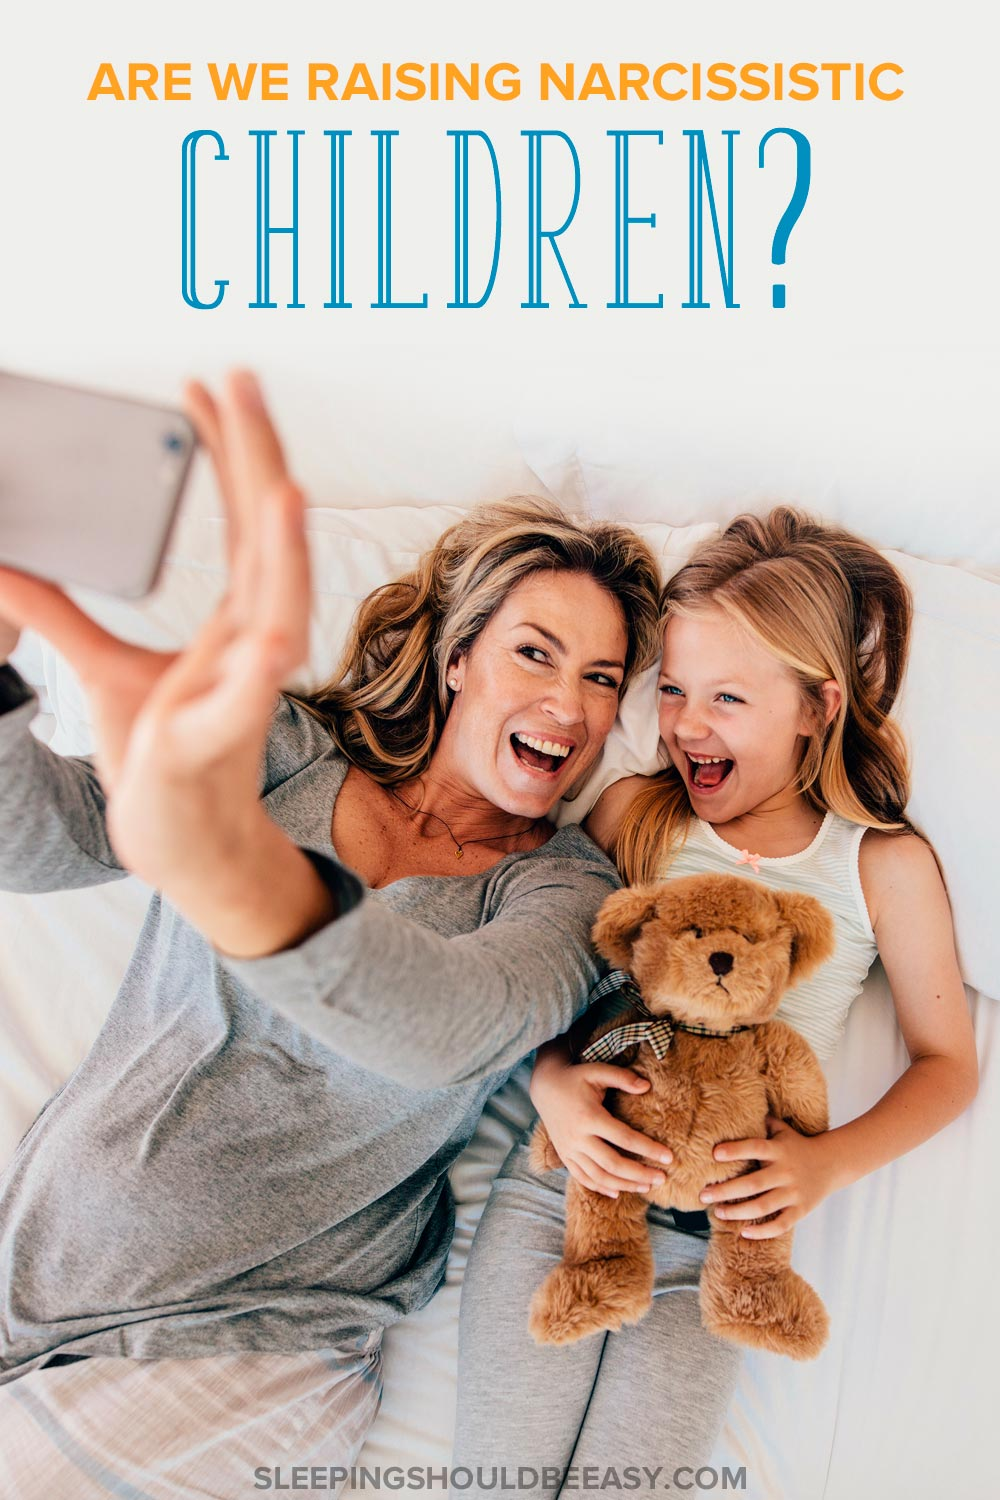 Are we raising narcissistic children? Learn the warning signs of raising narcissists as well as tips on how to avoid a self-centric generation.